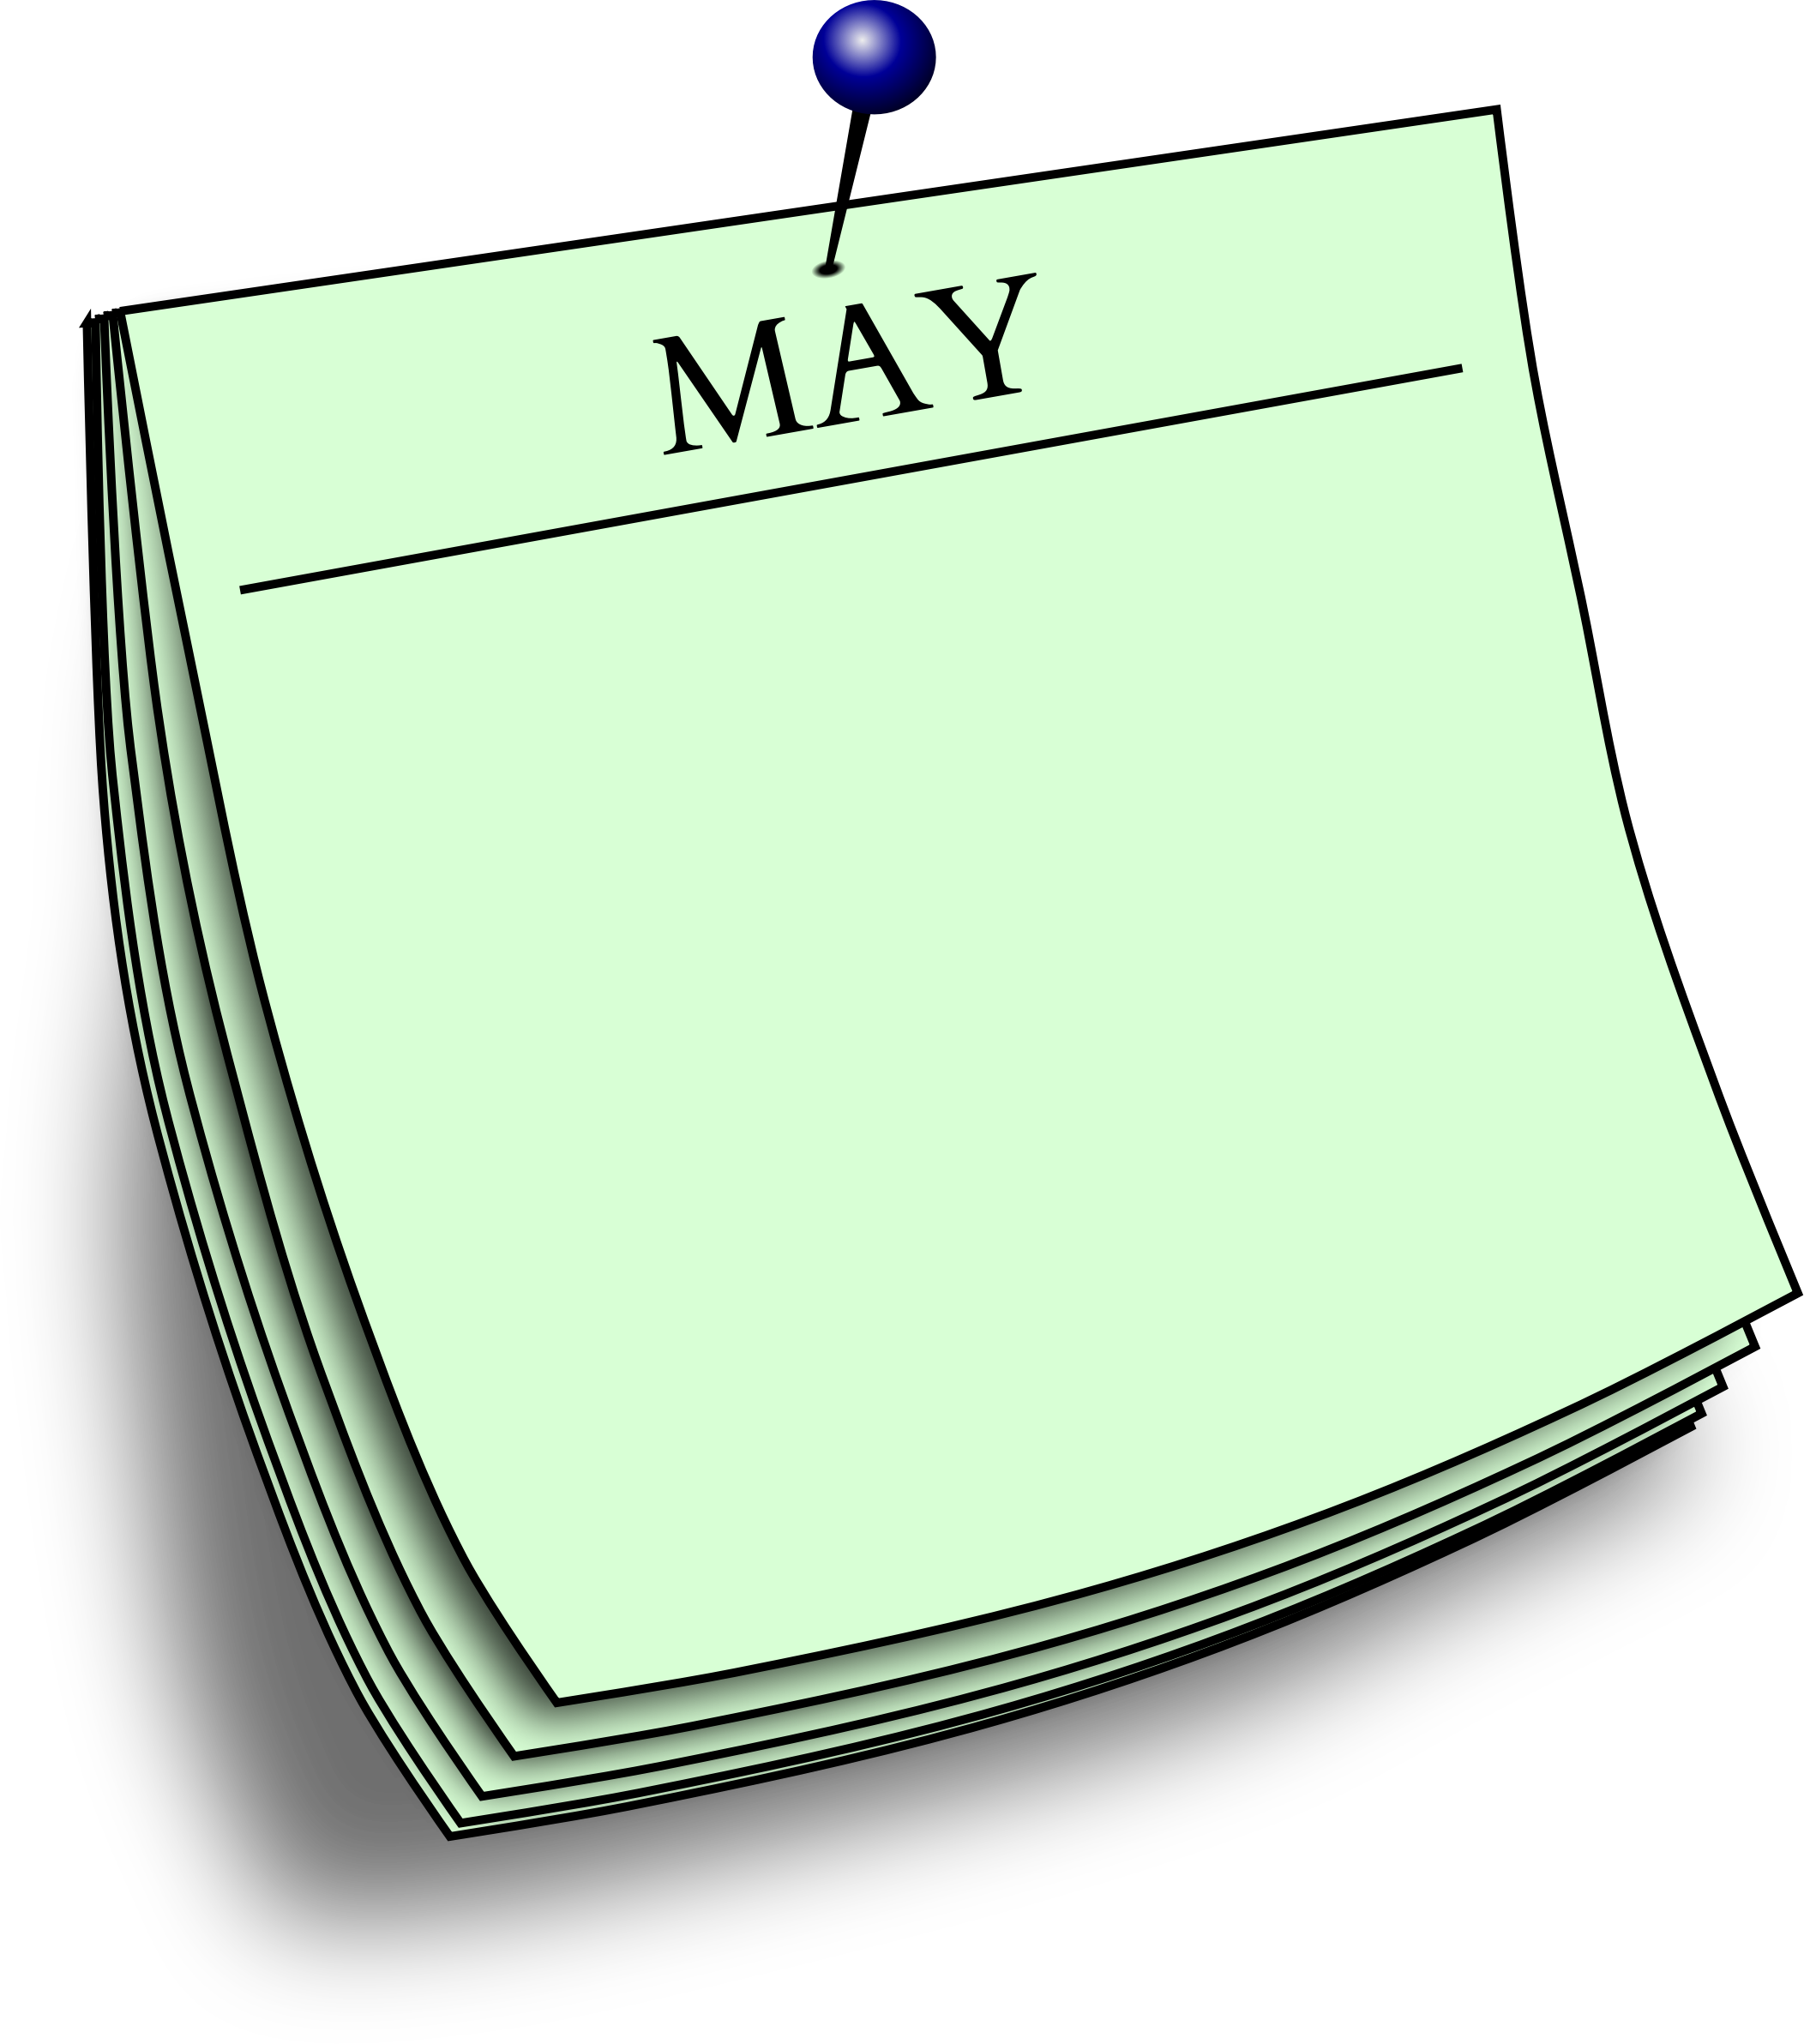 Monthly note - May by Firkin